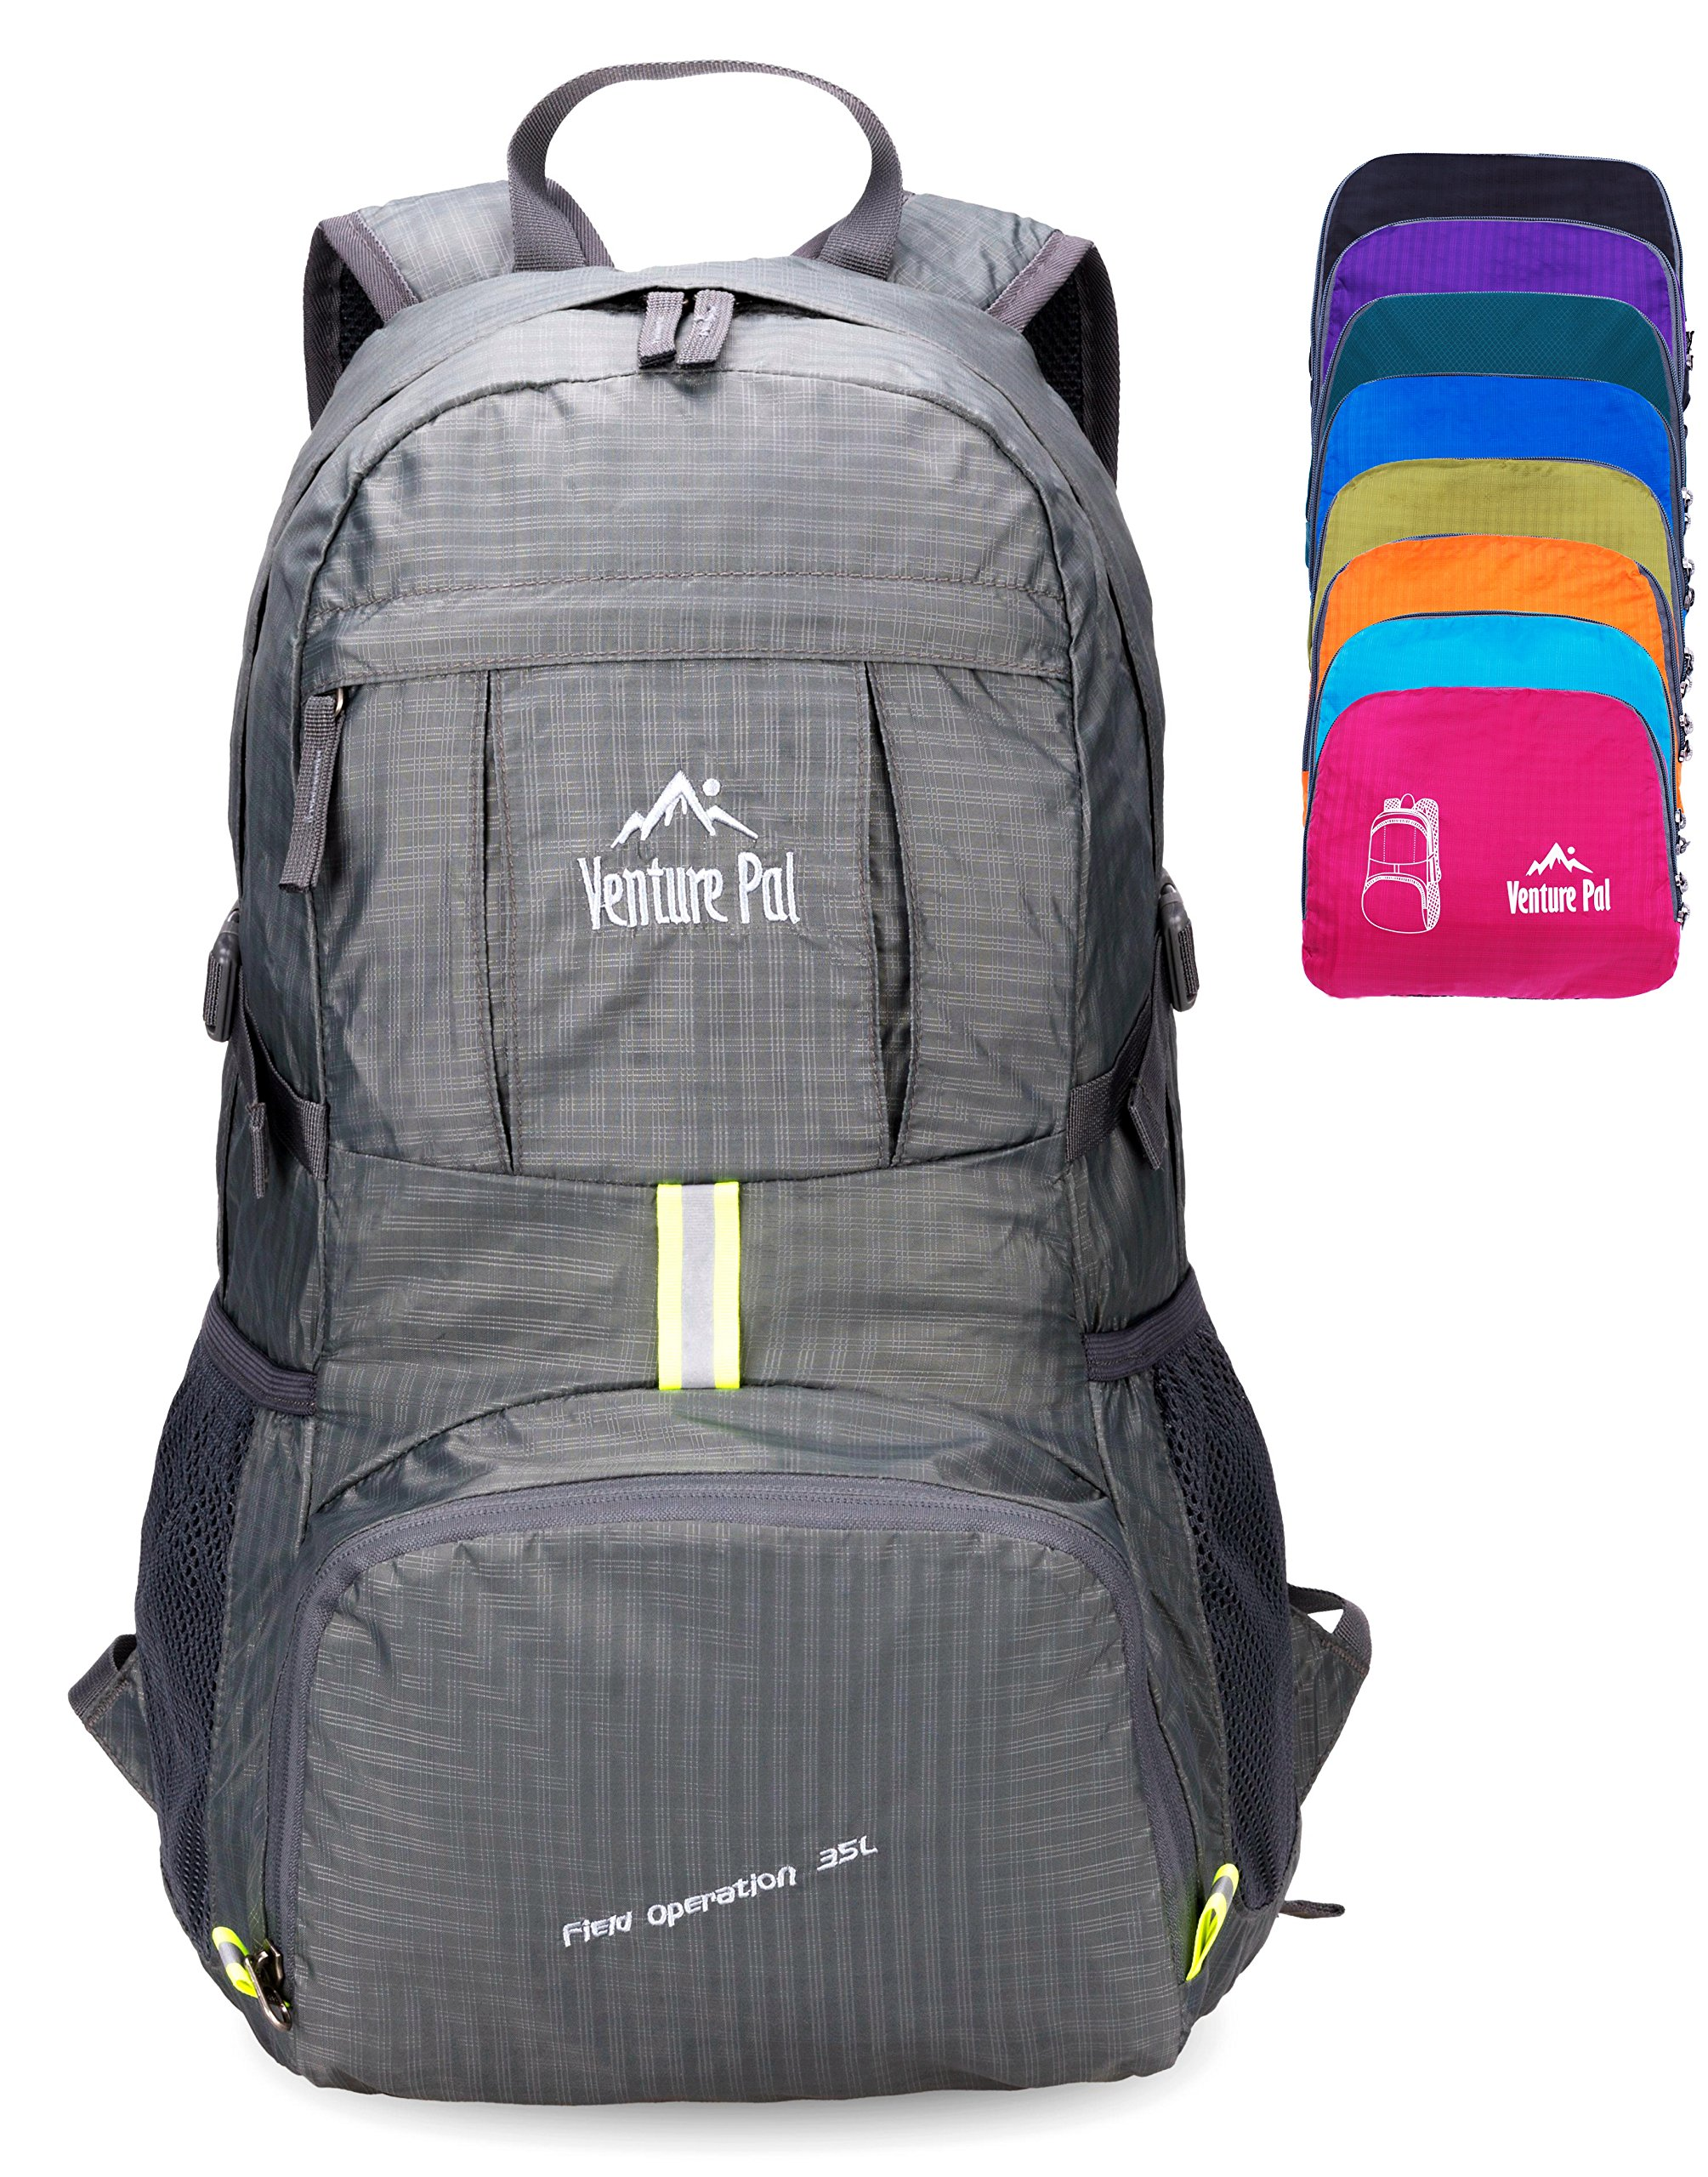 Venture Pal Lightweight Packable Durable Travel Hiking Backpack Daypack (Grey)